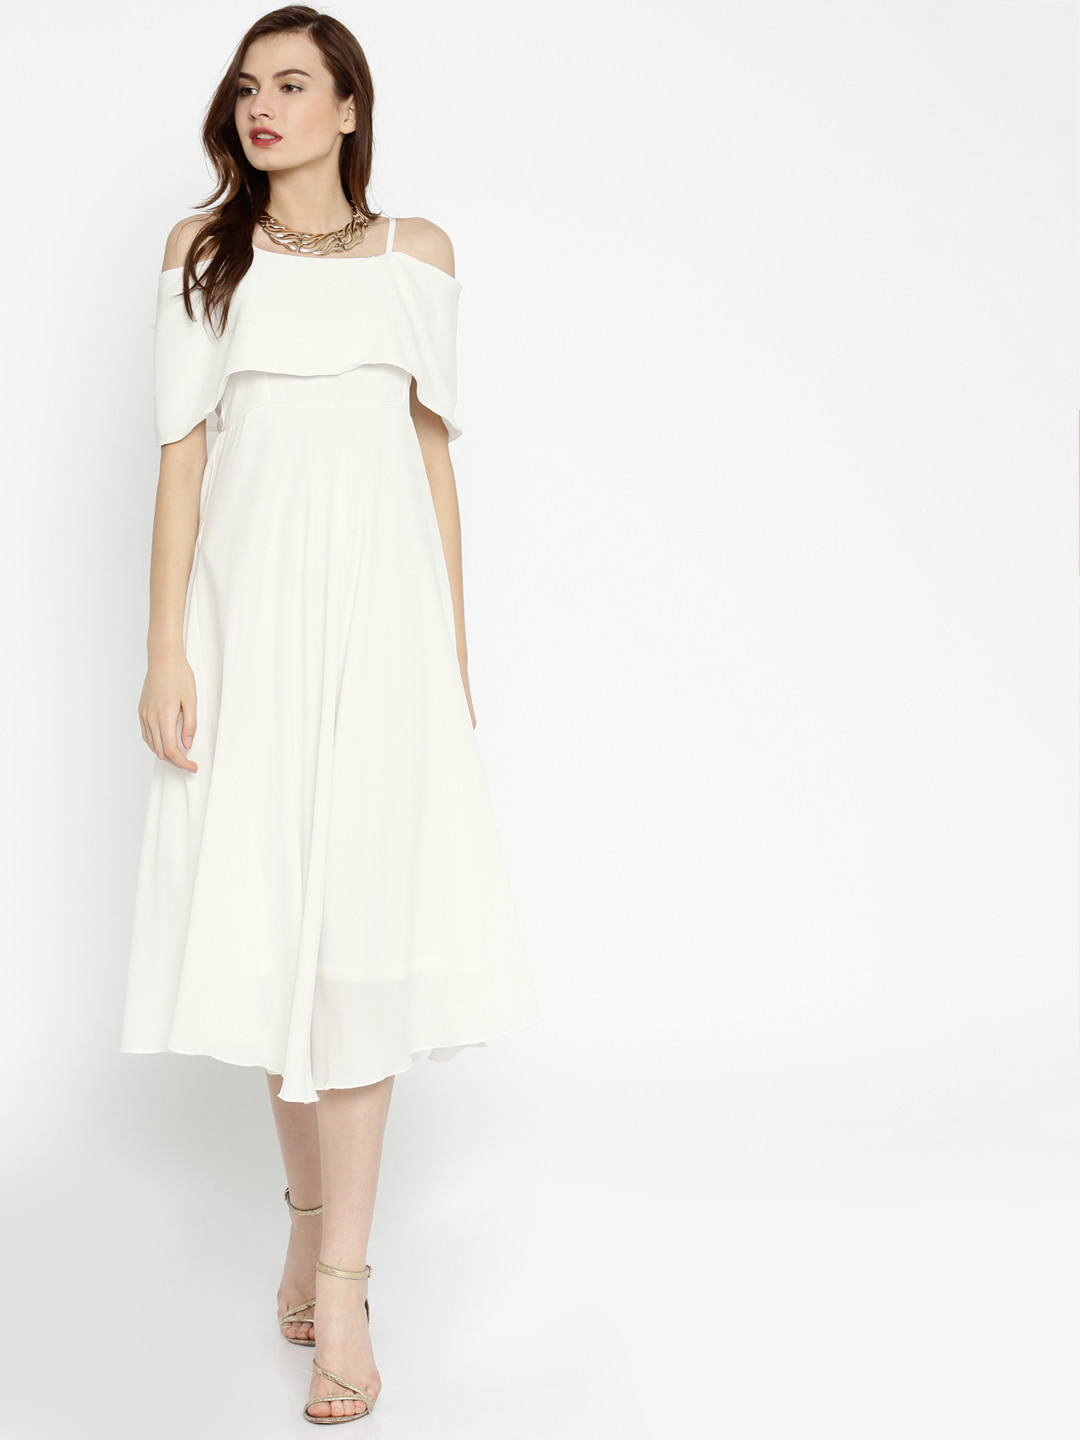 SASSAFRAS Women White Solid Layered Fit & Flare Dress Price in India